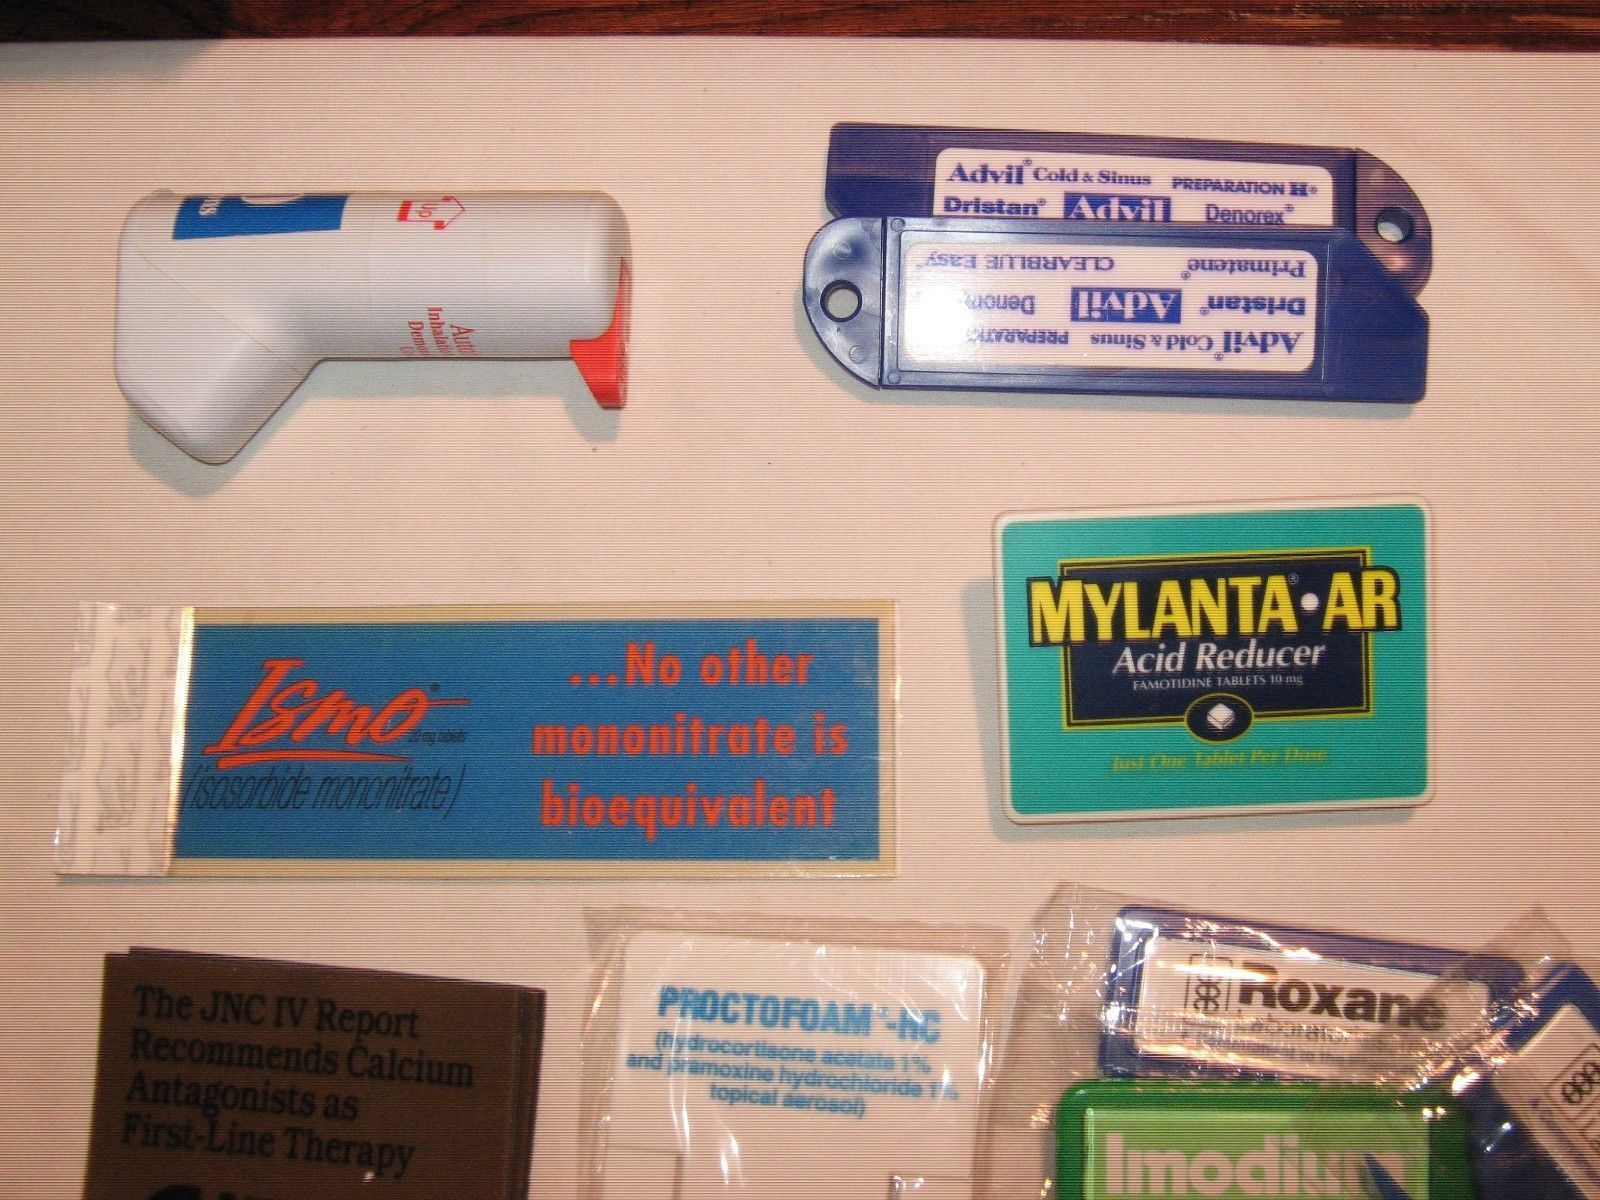 Rx, Pharmacy Promotional Items, Mixed Lot image 3